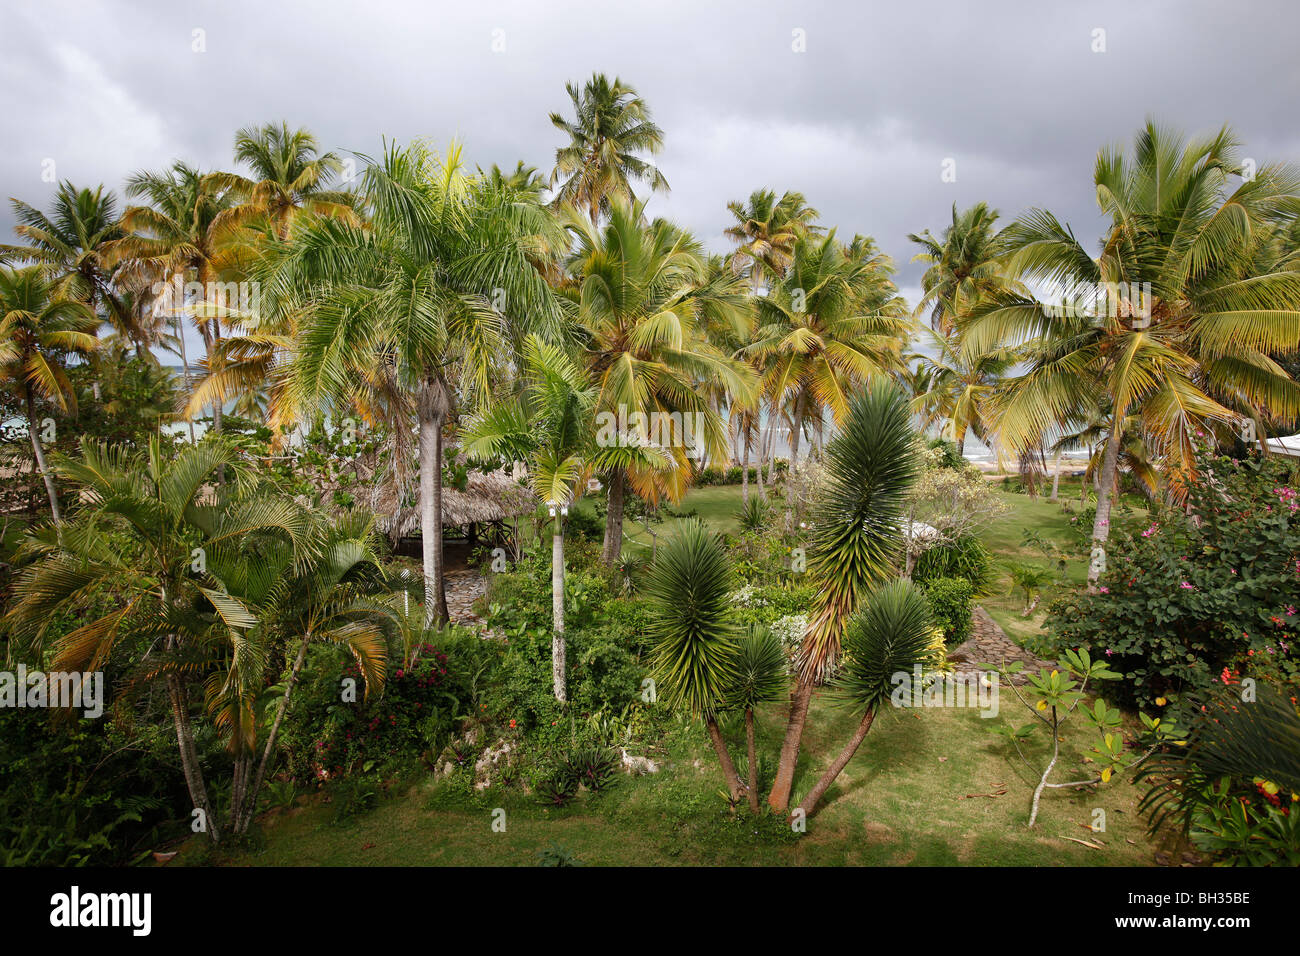 Palm trees, lawn beach, ocean, Las Galeras, Samana peninsula, Dominican Republic - Stock Image